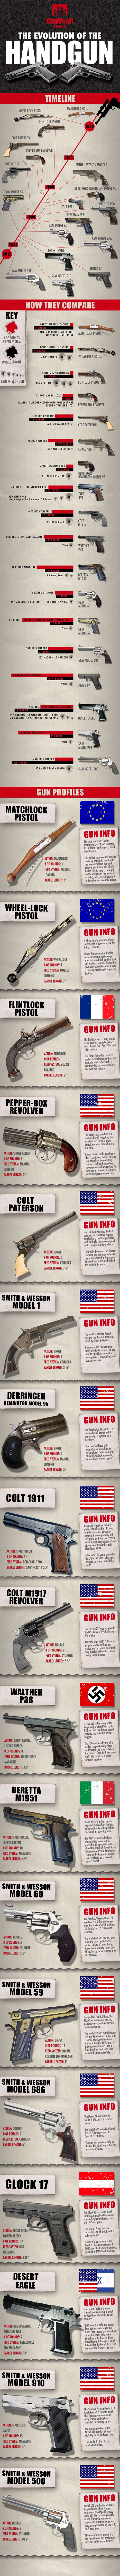 The evolution and advancement  of the handgun - cool infographic from http://www.gunvault.com